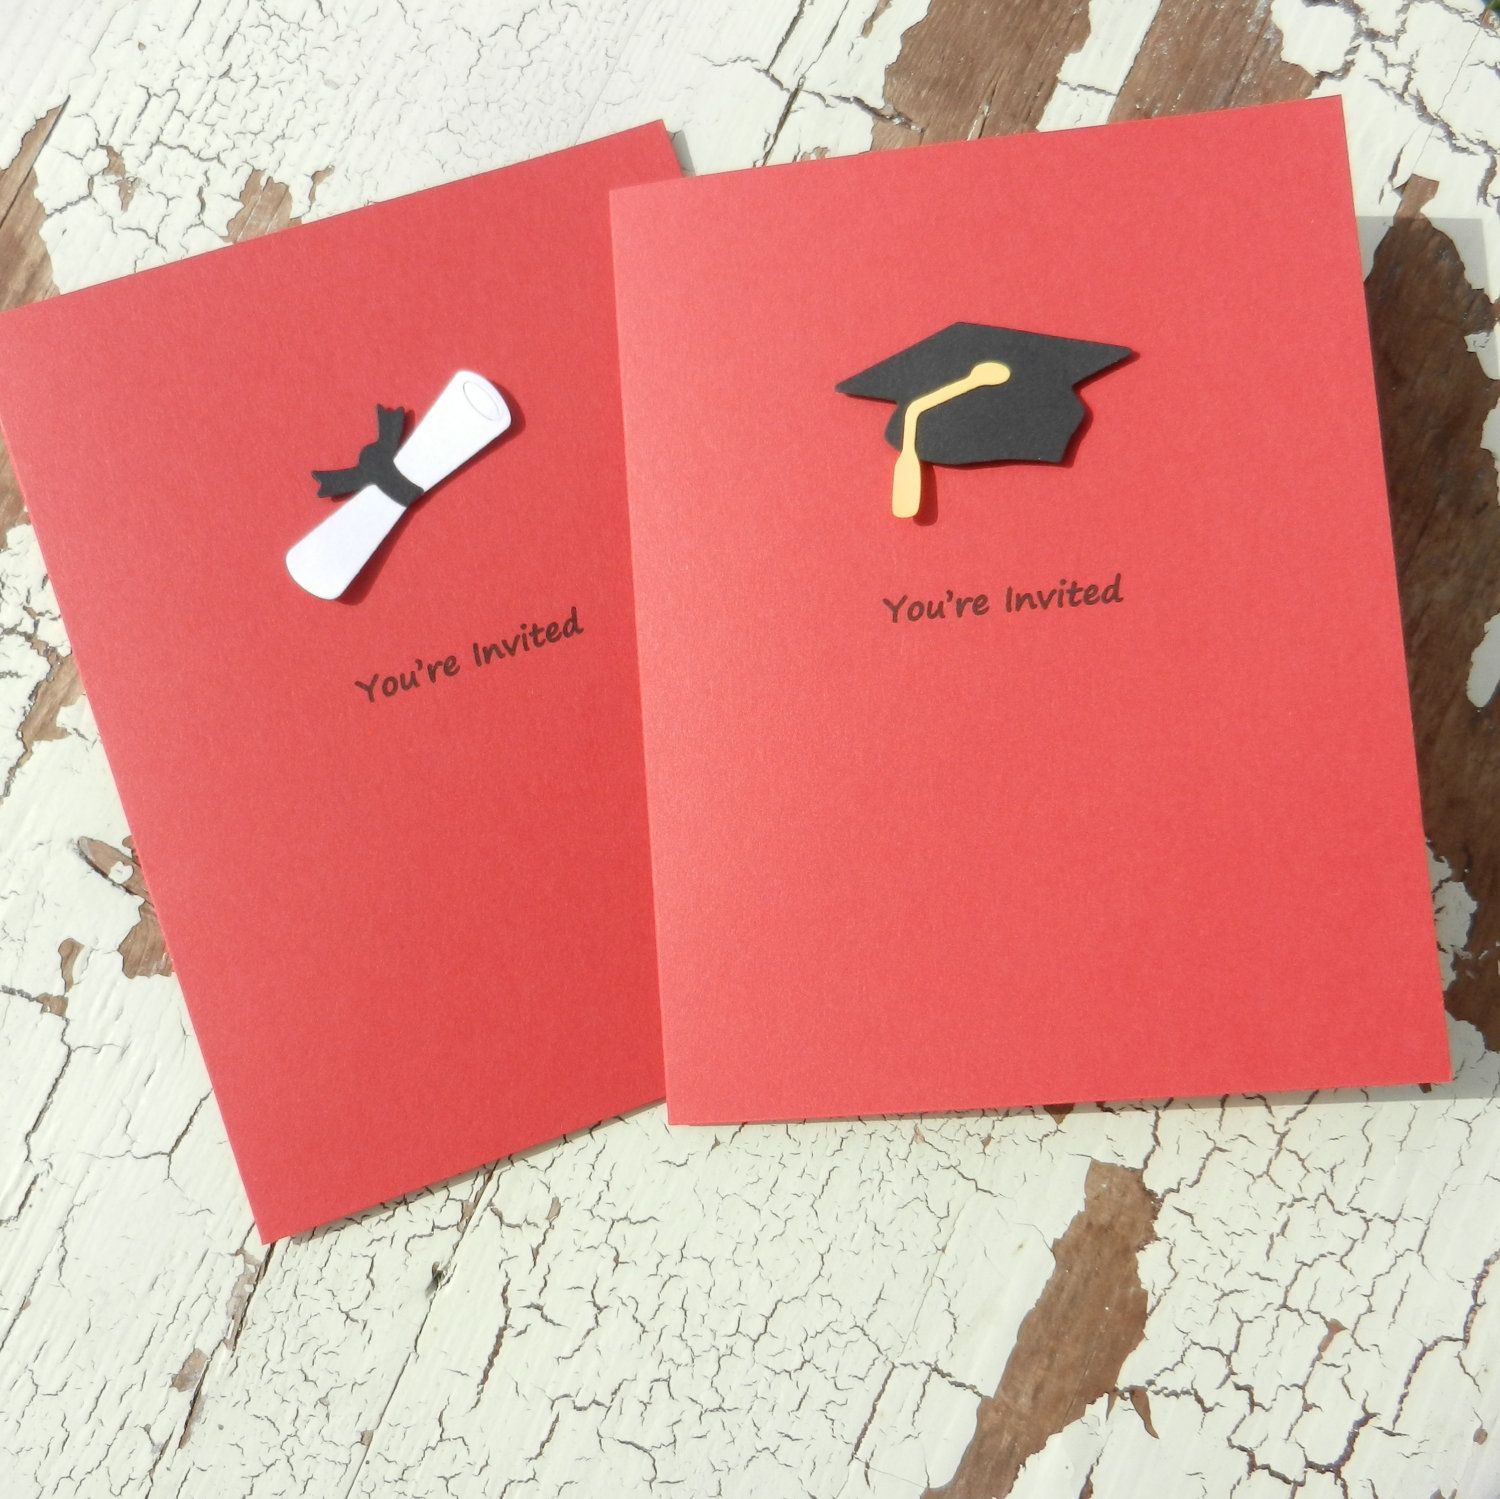 Handmade Graduation Invitations 10 Pack Red 1400 via Etsy